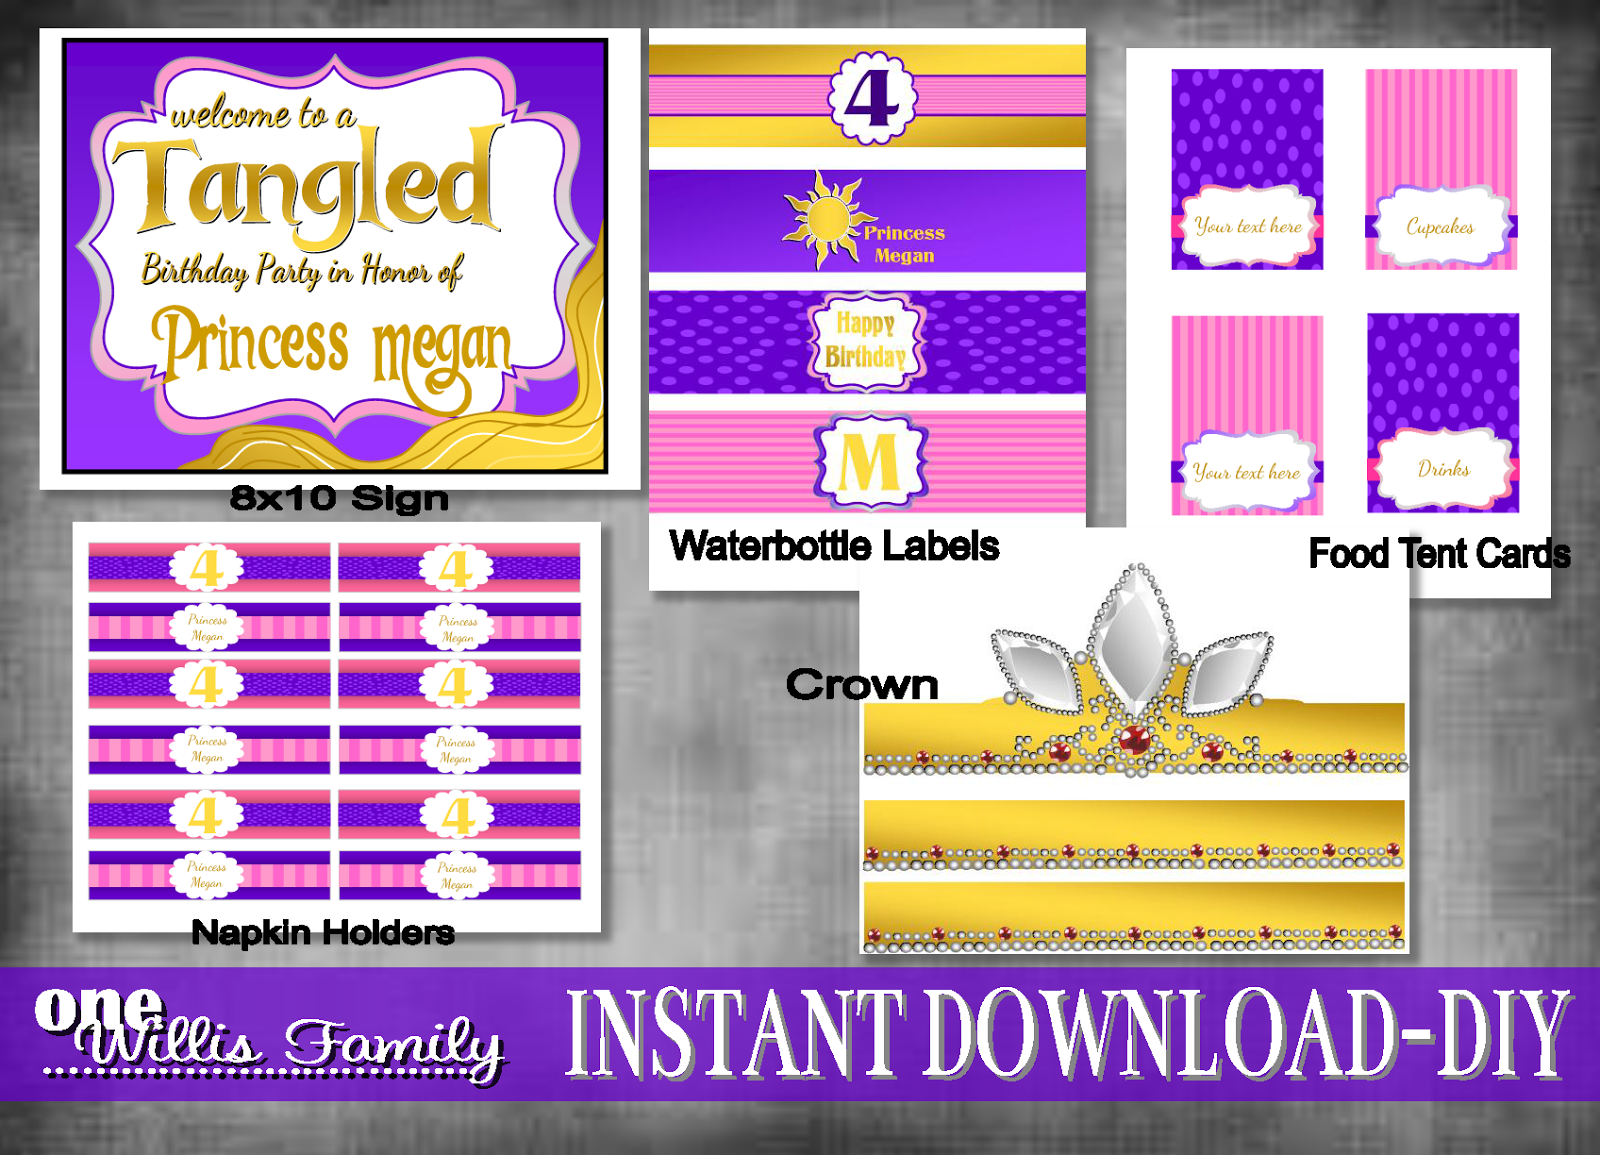 Disney's Tangled Birthday Party Pack